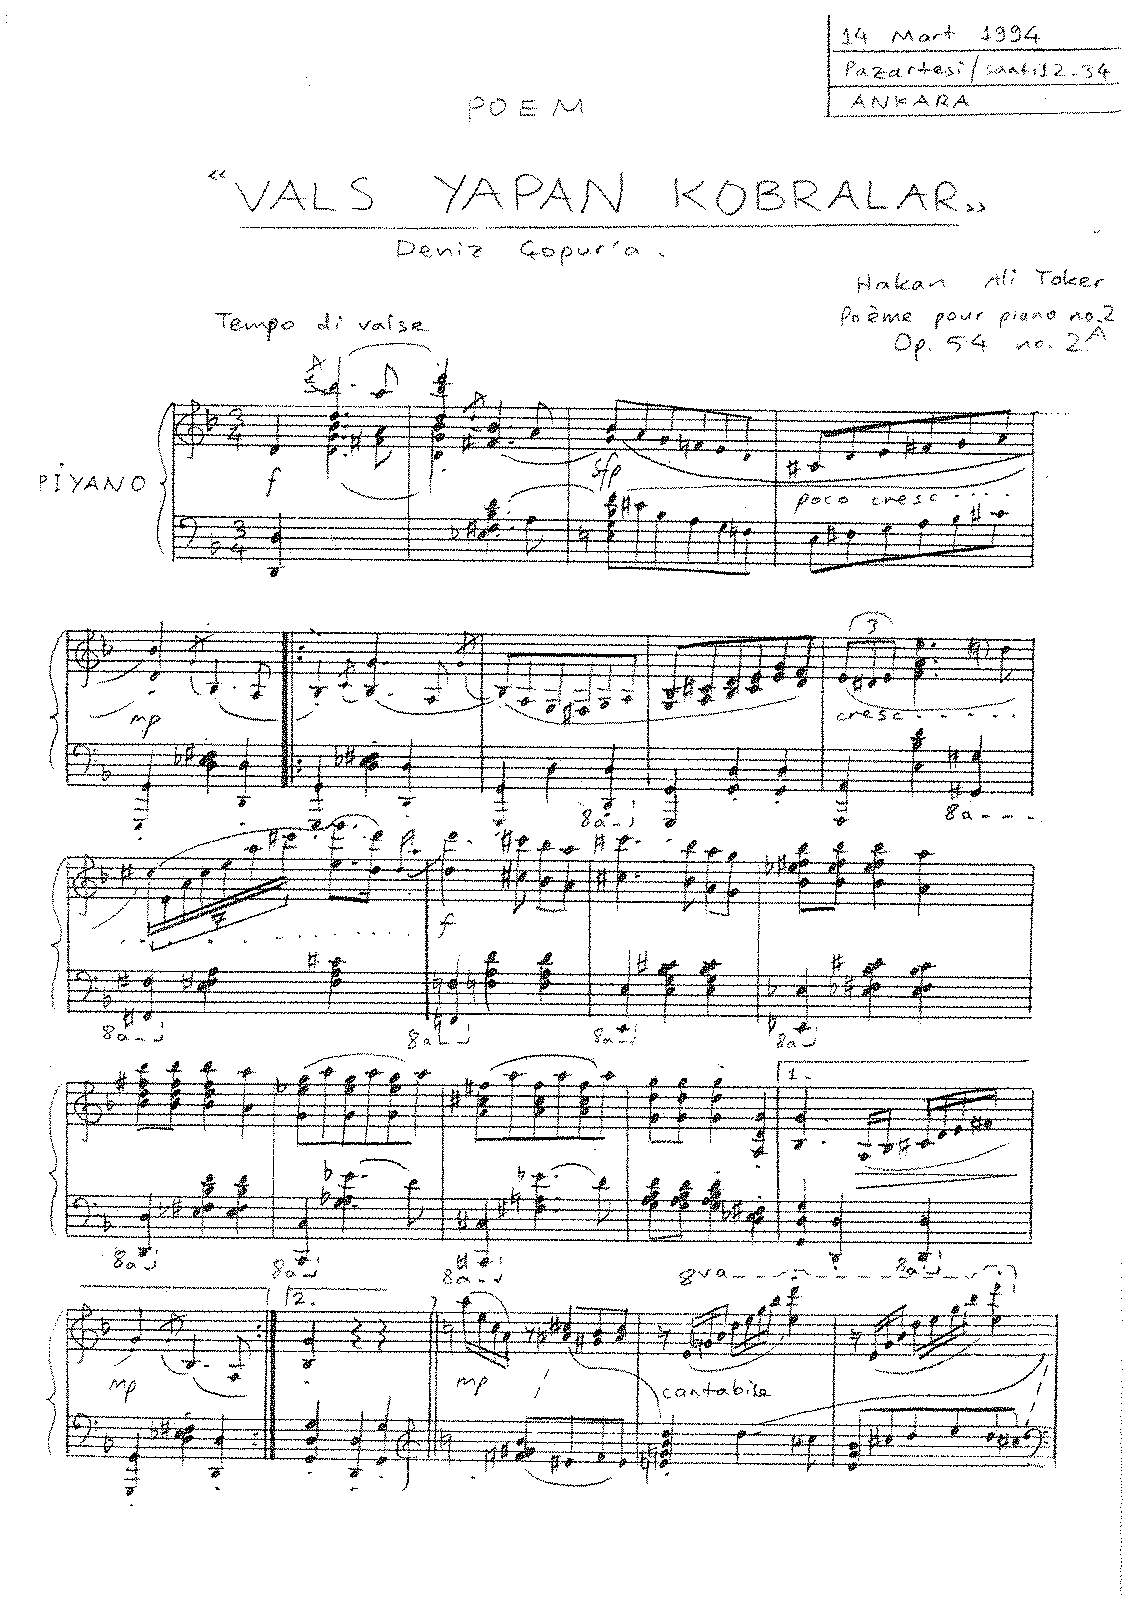 PMLP583819-Waltzing Cobras Op.54 No.2A by Hakan A. Toker.pdf